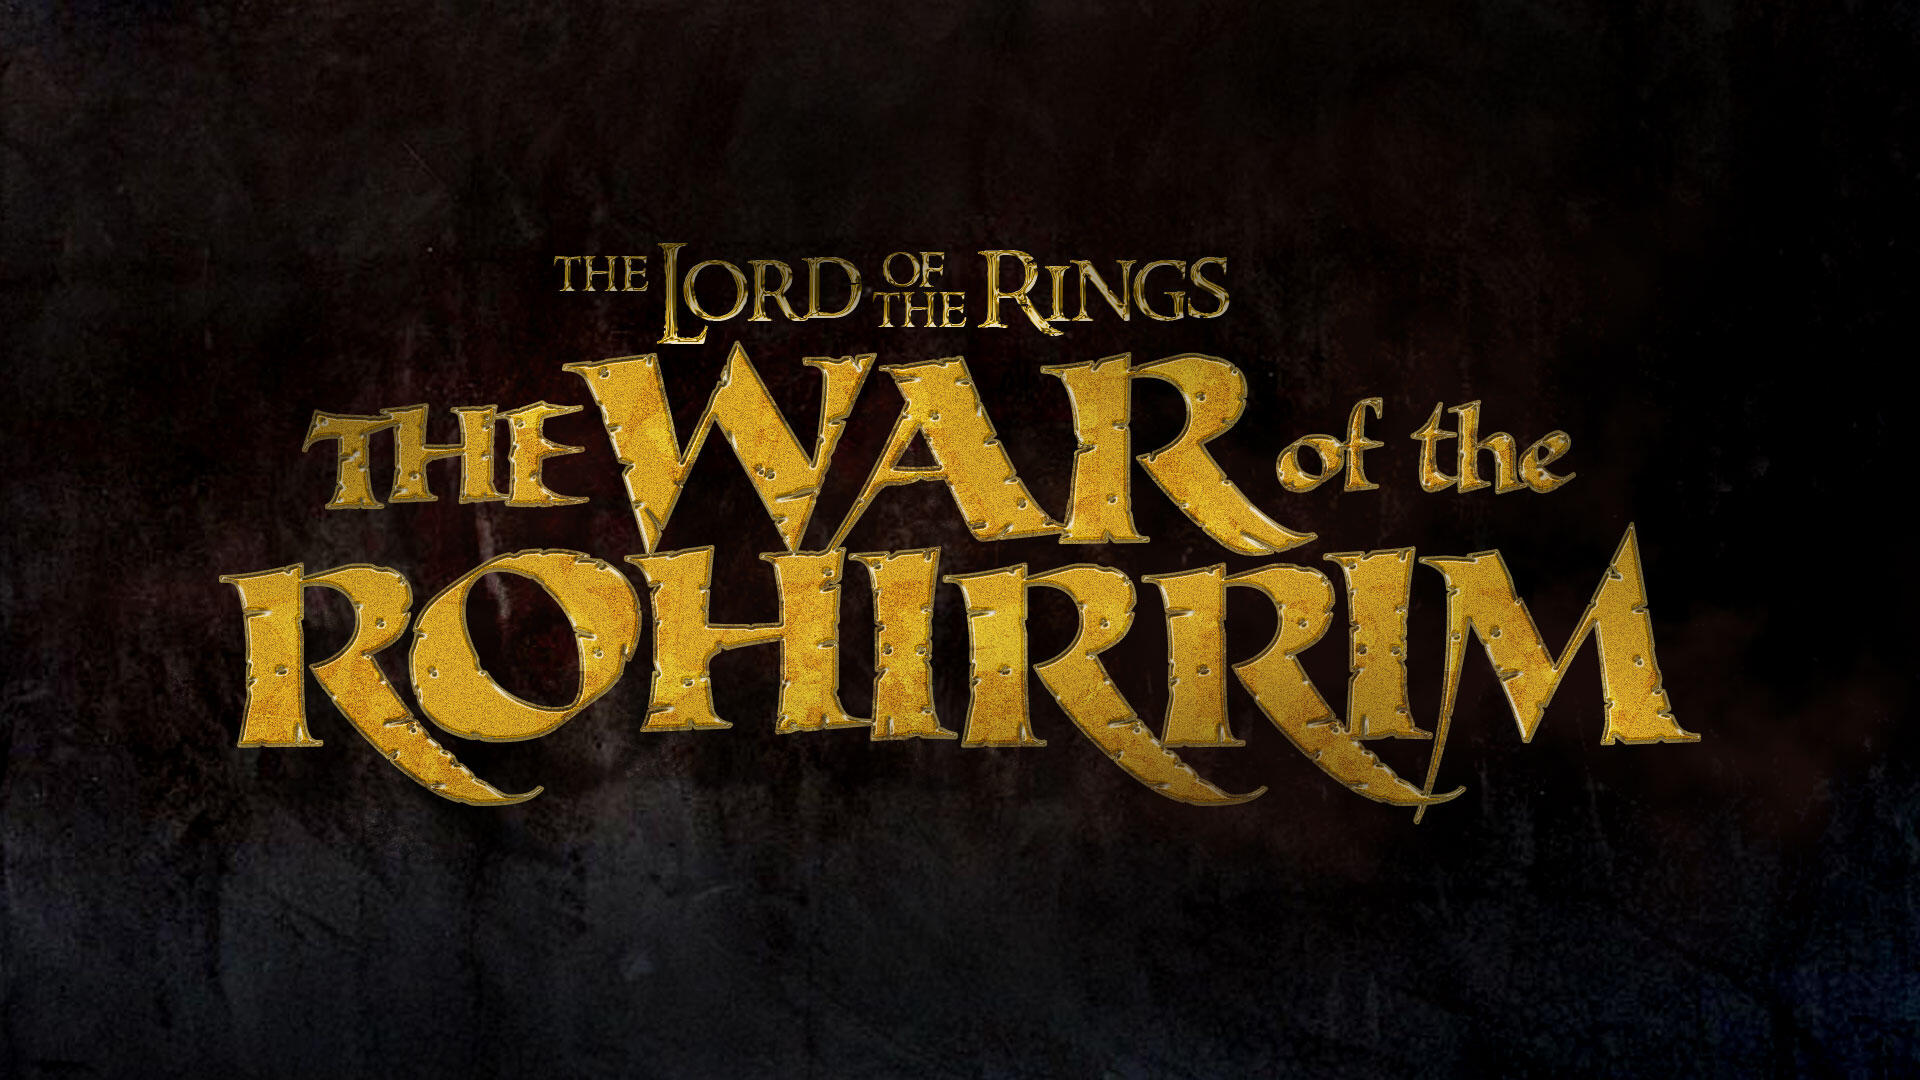 Lord of the Rings anime prequel movie War of the Rohirrim announced - CNET